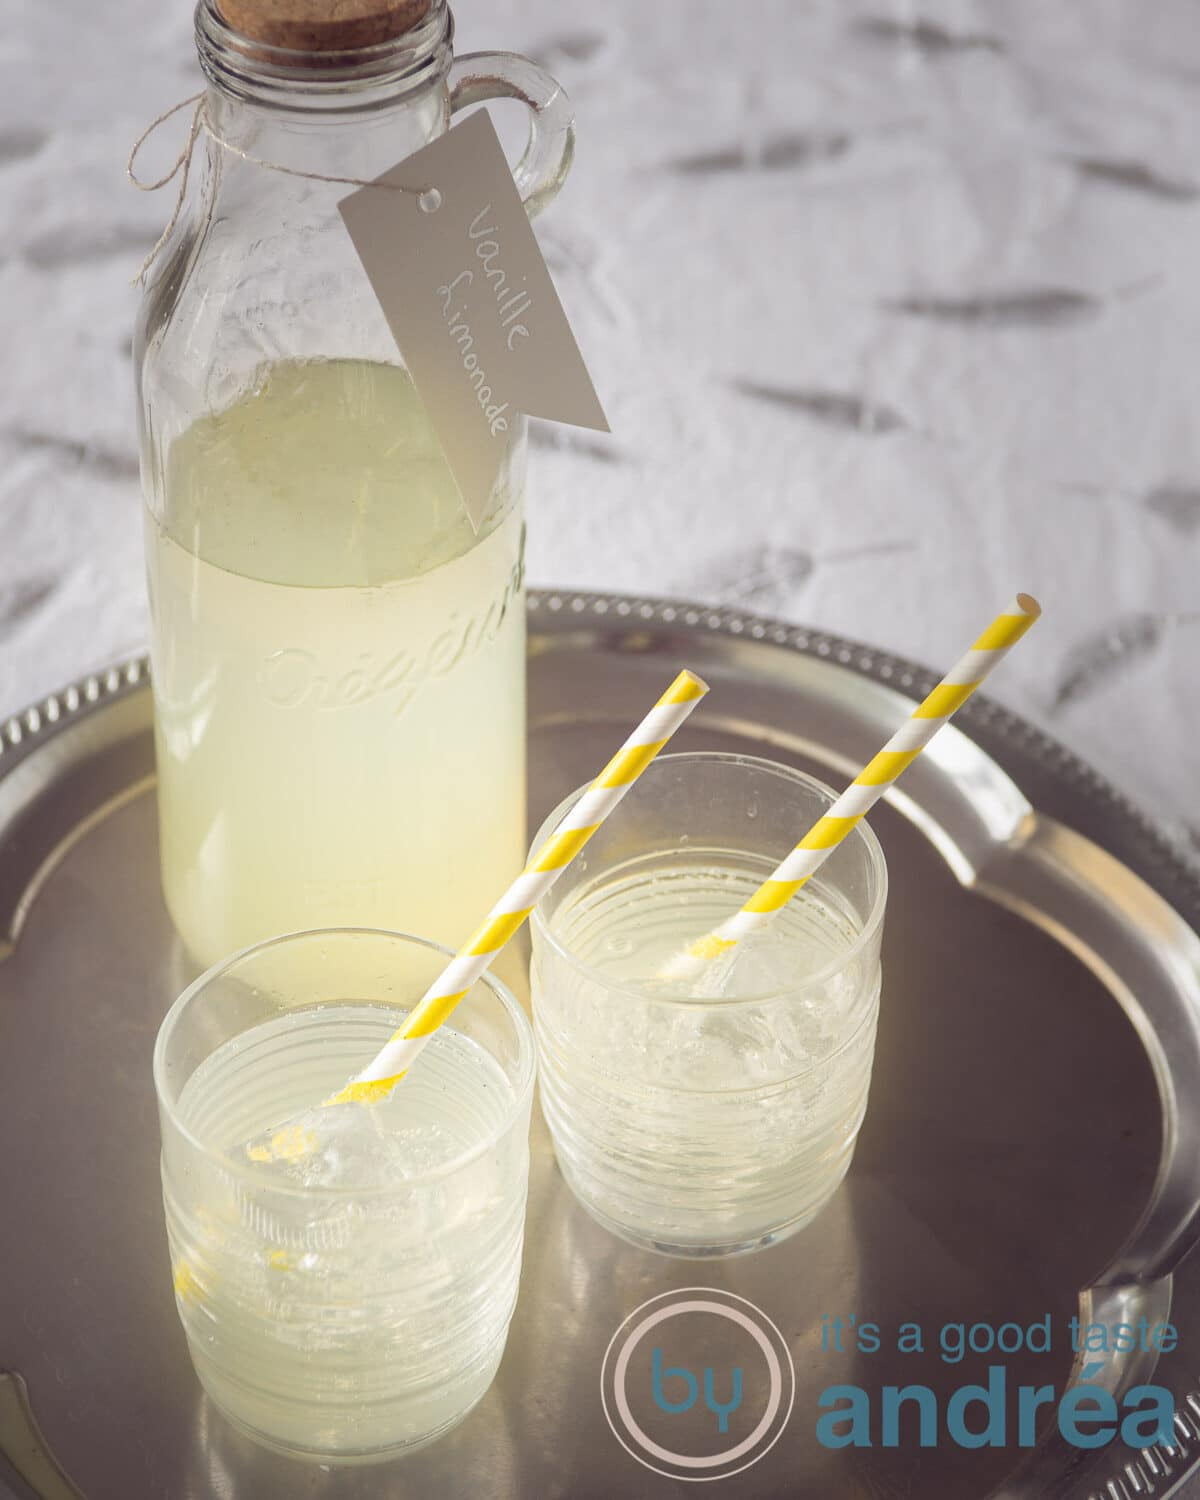 a bottle with vanilla lemonade and two glasses with straw filled with lemonade